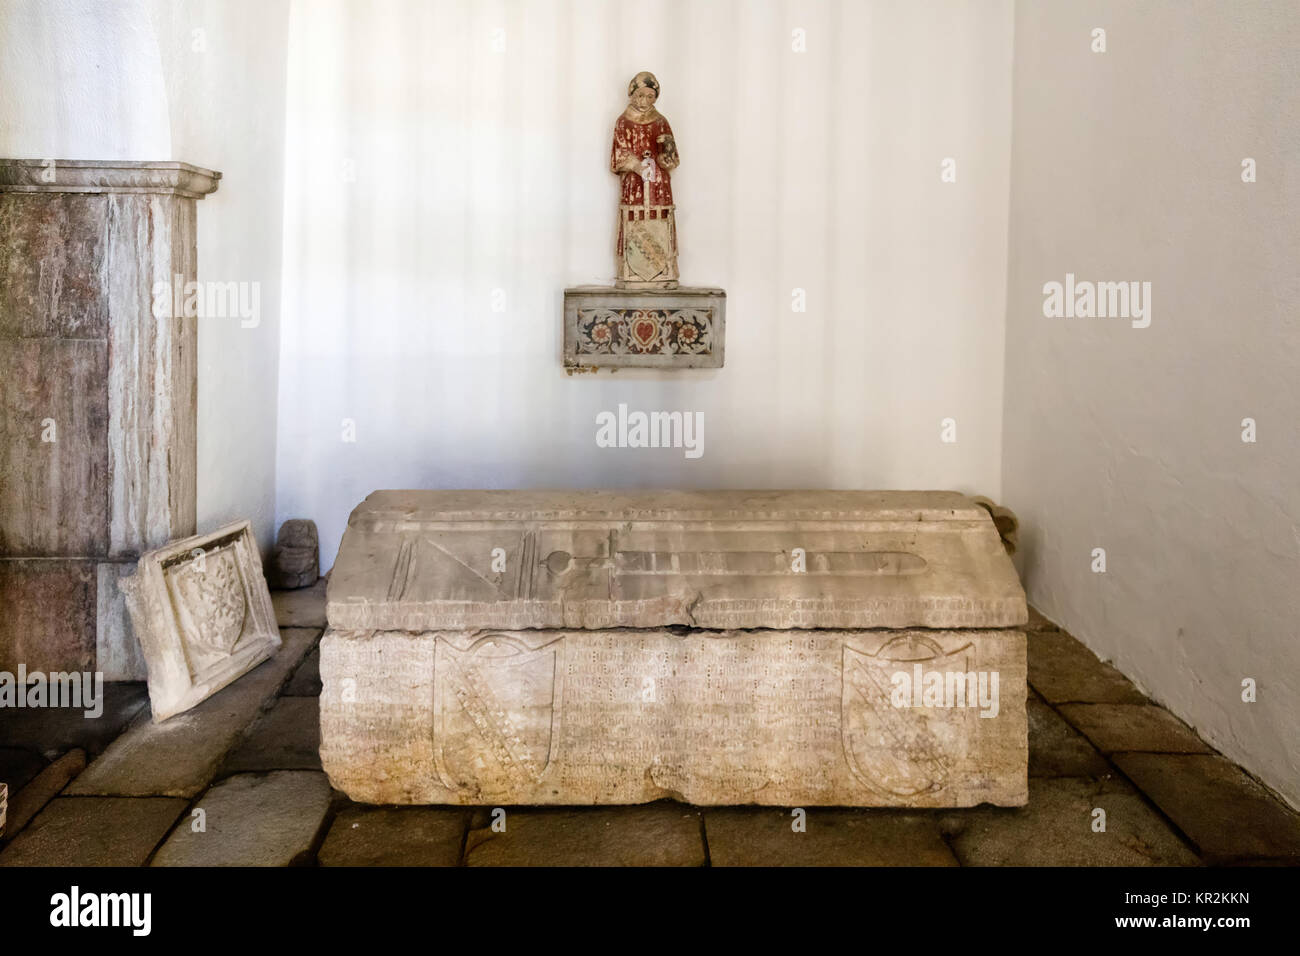 Medieval tomb in the Cloisters of  the Lisbon Cathedral in Lisbon, Portugal - Stock Image